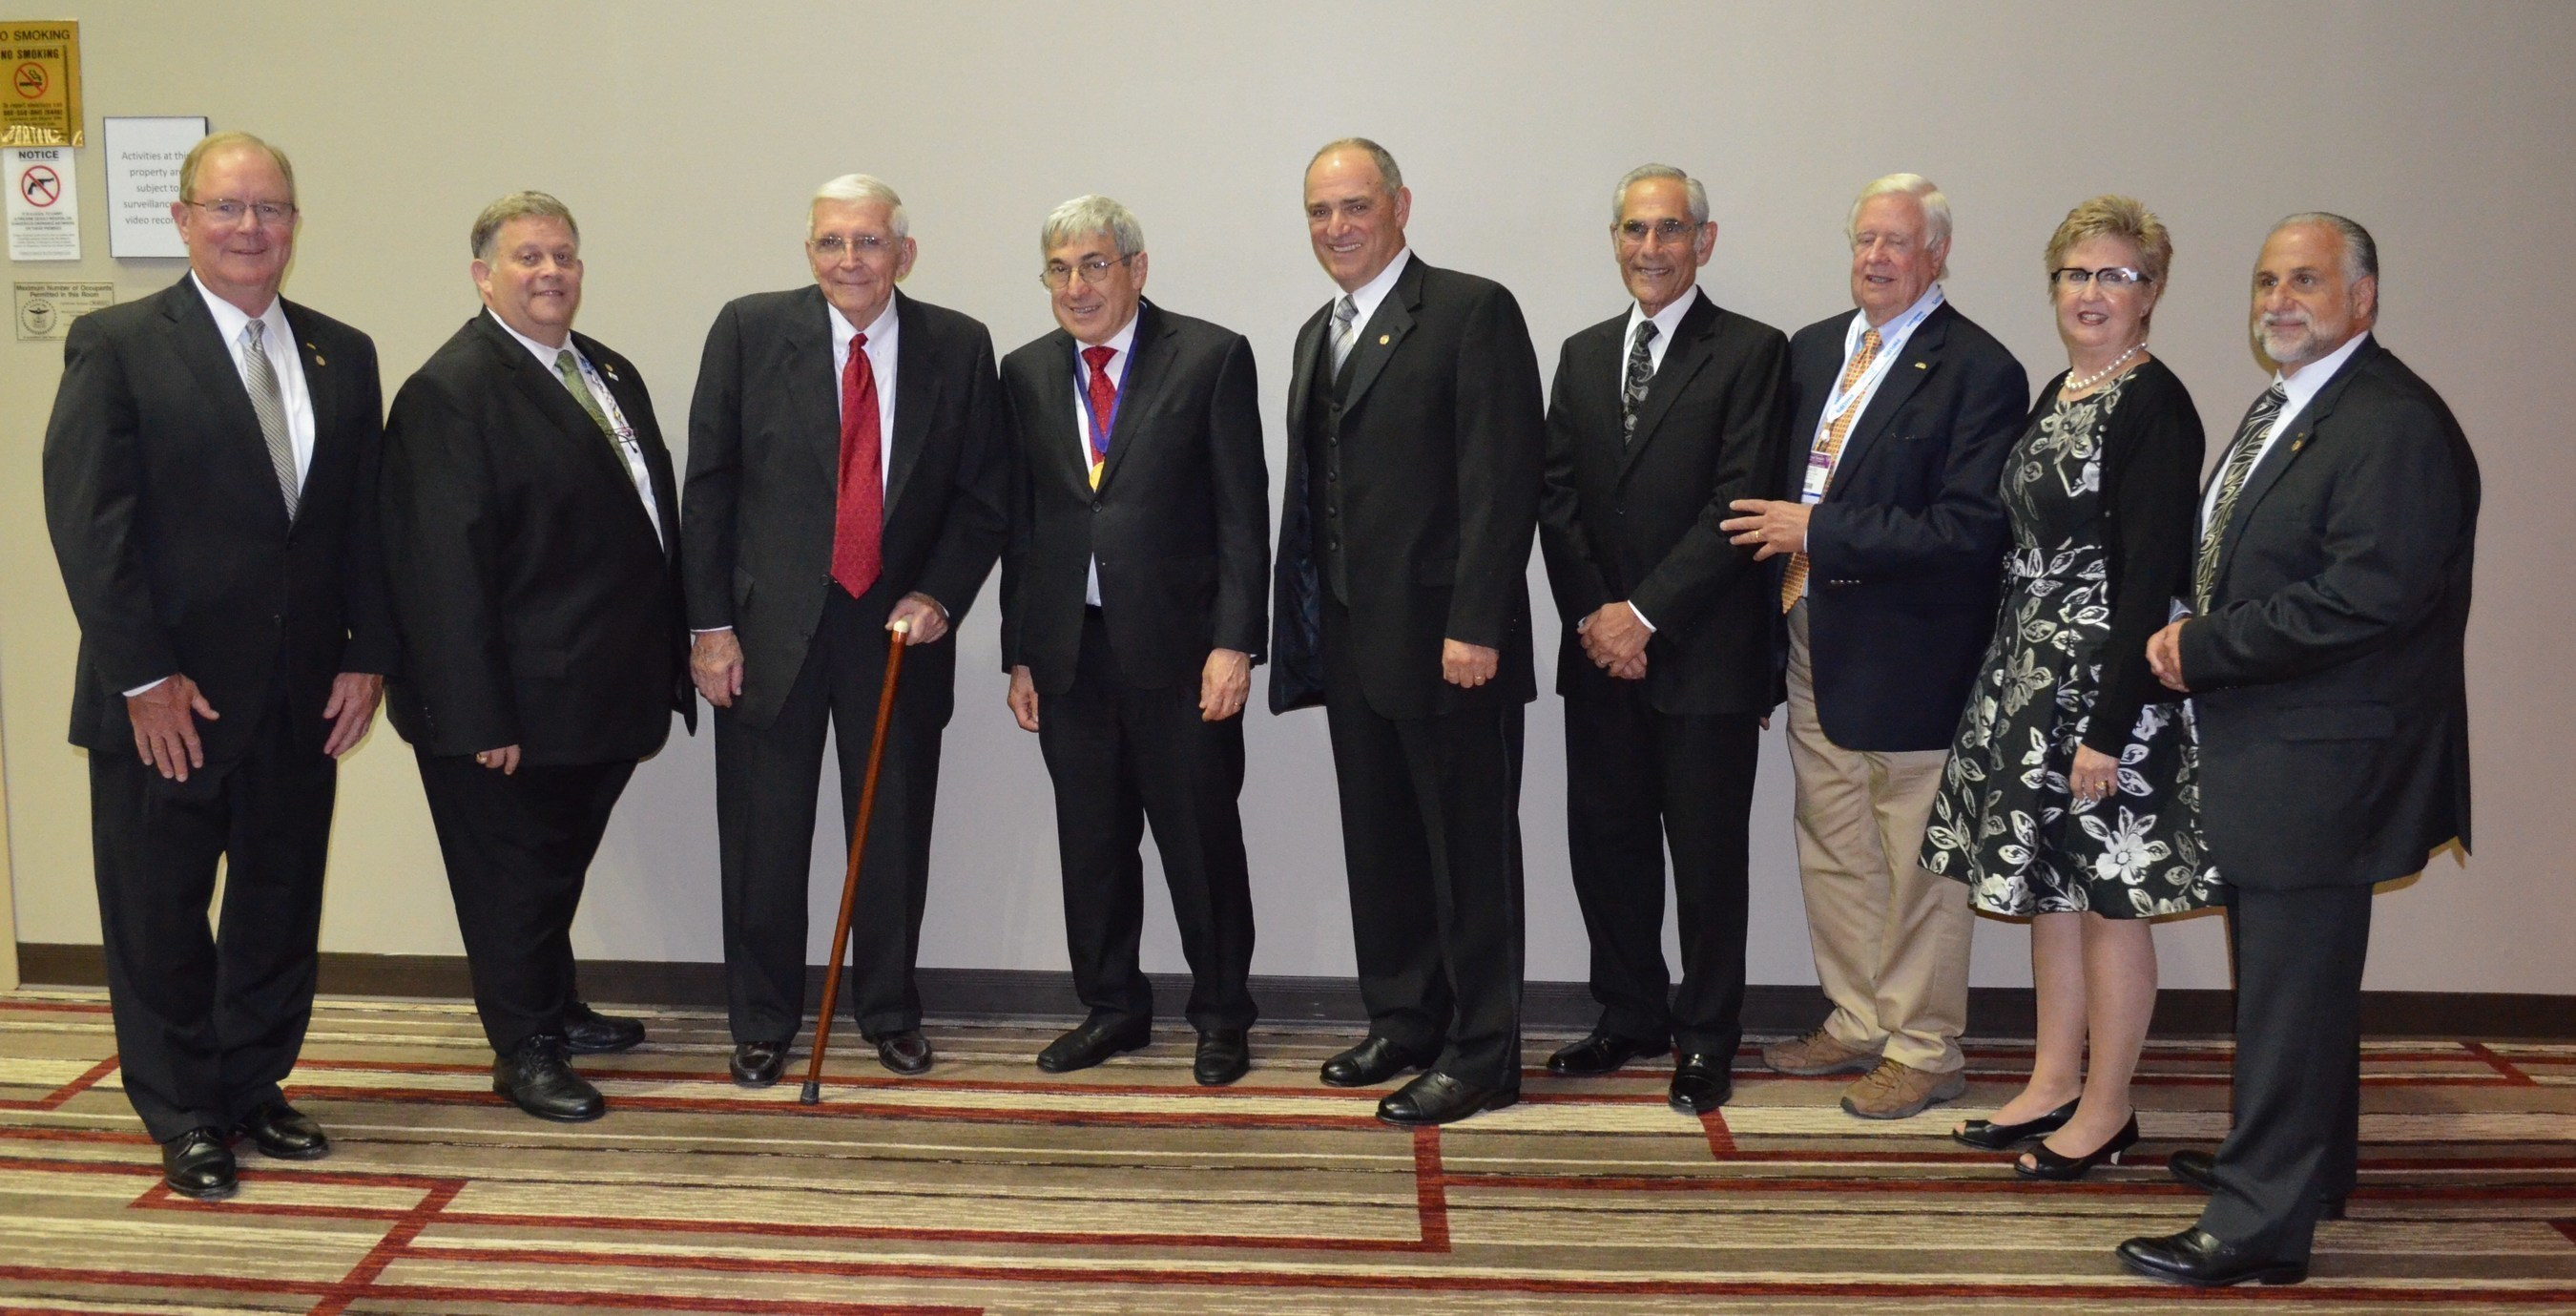 Members of the Callahan Memorial Award Commission congratulate Stanley Bergman, the 2015 Callahan Memorial Award honoree. Pictured from left: Dr. Joe Crowley, 2015 Commission Vice Chairman and American Dental Association (ADA) 7th District Trustee; Dr. Kevin Laing, Callahan Commissioner and President-Elect of the Ohio Dental Association; Dr. Jack Gottschalk, Commissioner Emeritus; Stanley Bergman; Dr. Joe Mellion, Commission Chairman; Dr. Lawrence Goldblatt, Commissioner; Dr. David Rummel, Commissioner...